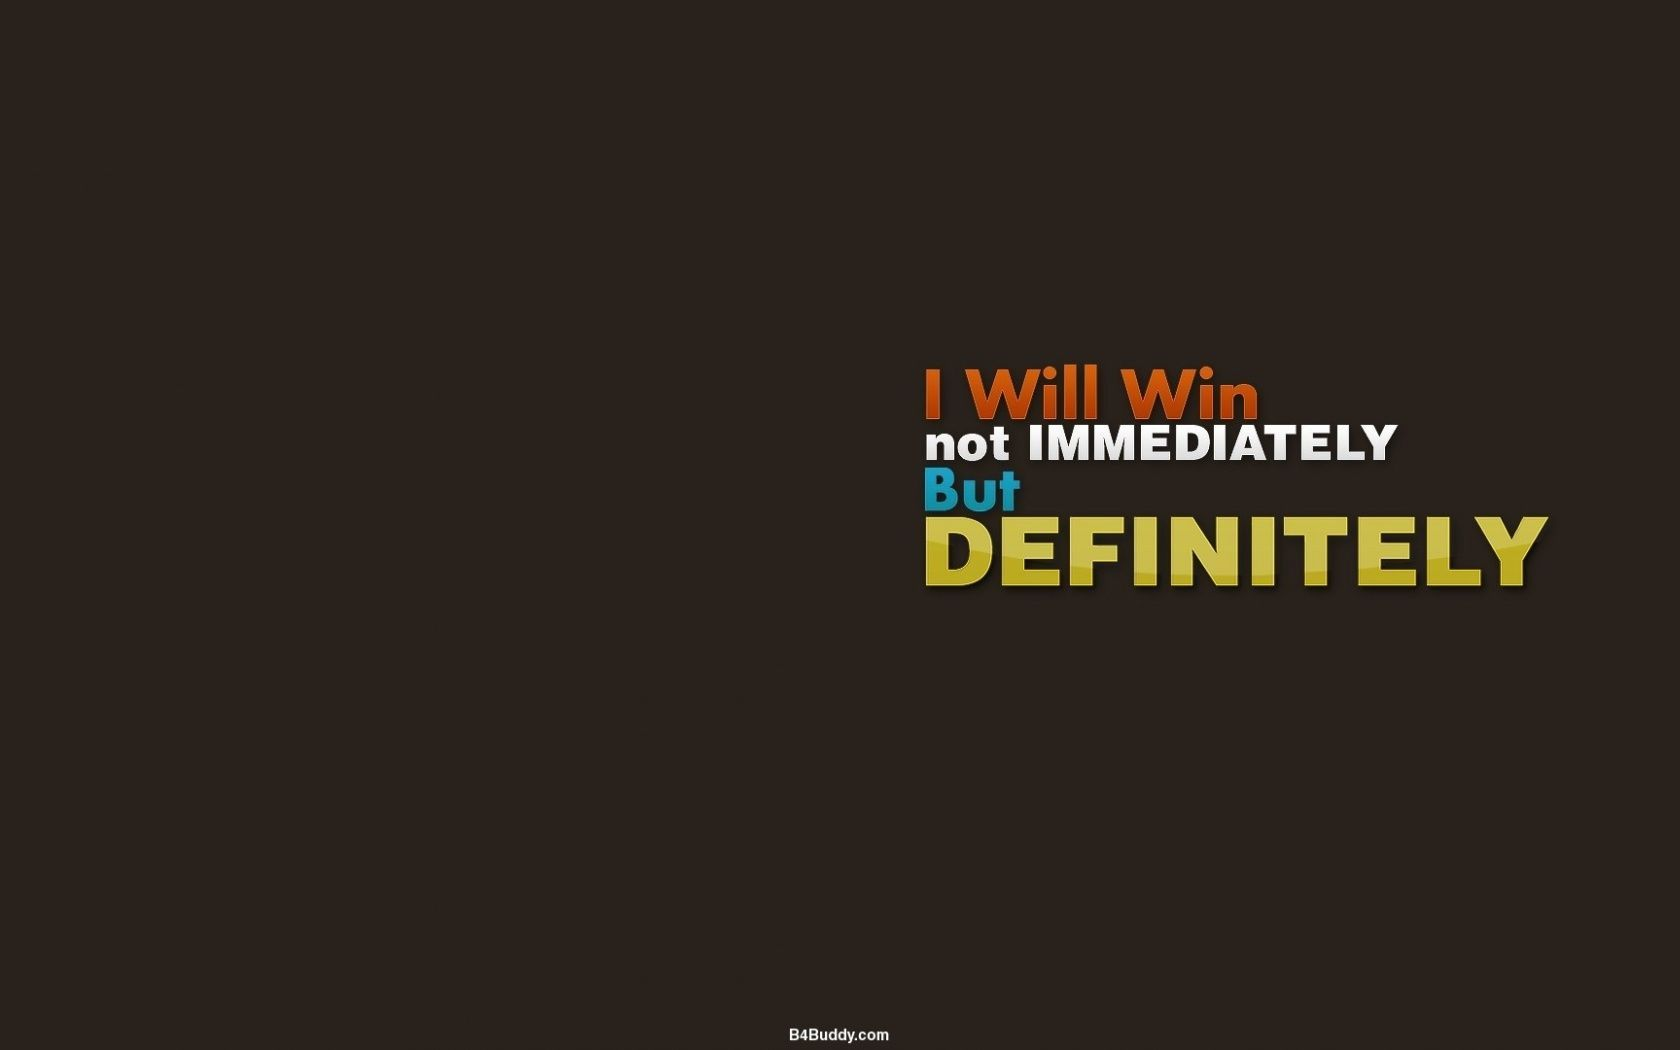 Inspirational Quotes Wallpapers Motivational Quotes For Working Out Motivational Quotes Wallpaper Work Motivational Quotes